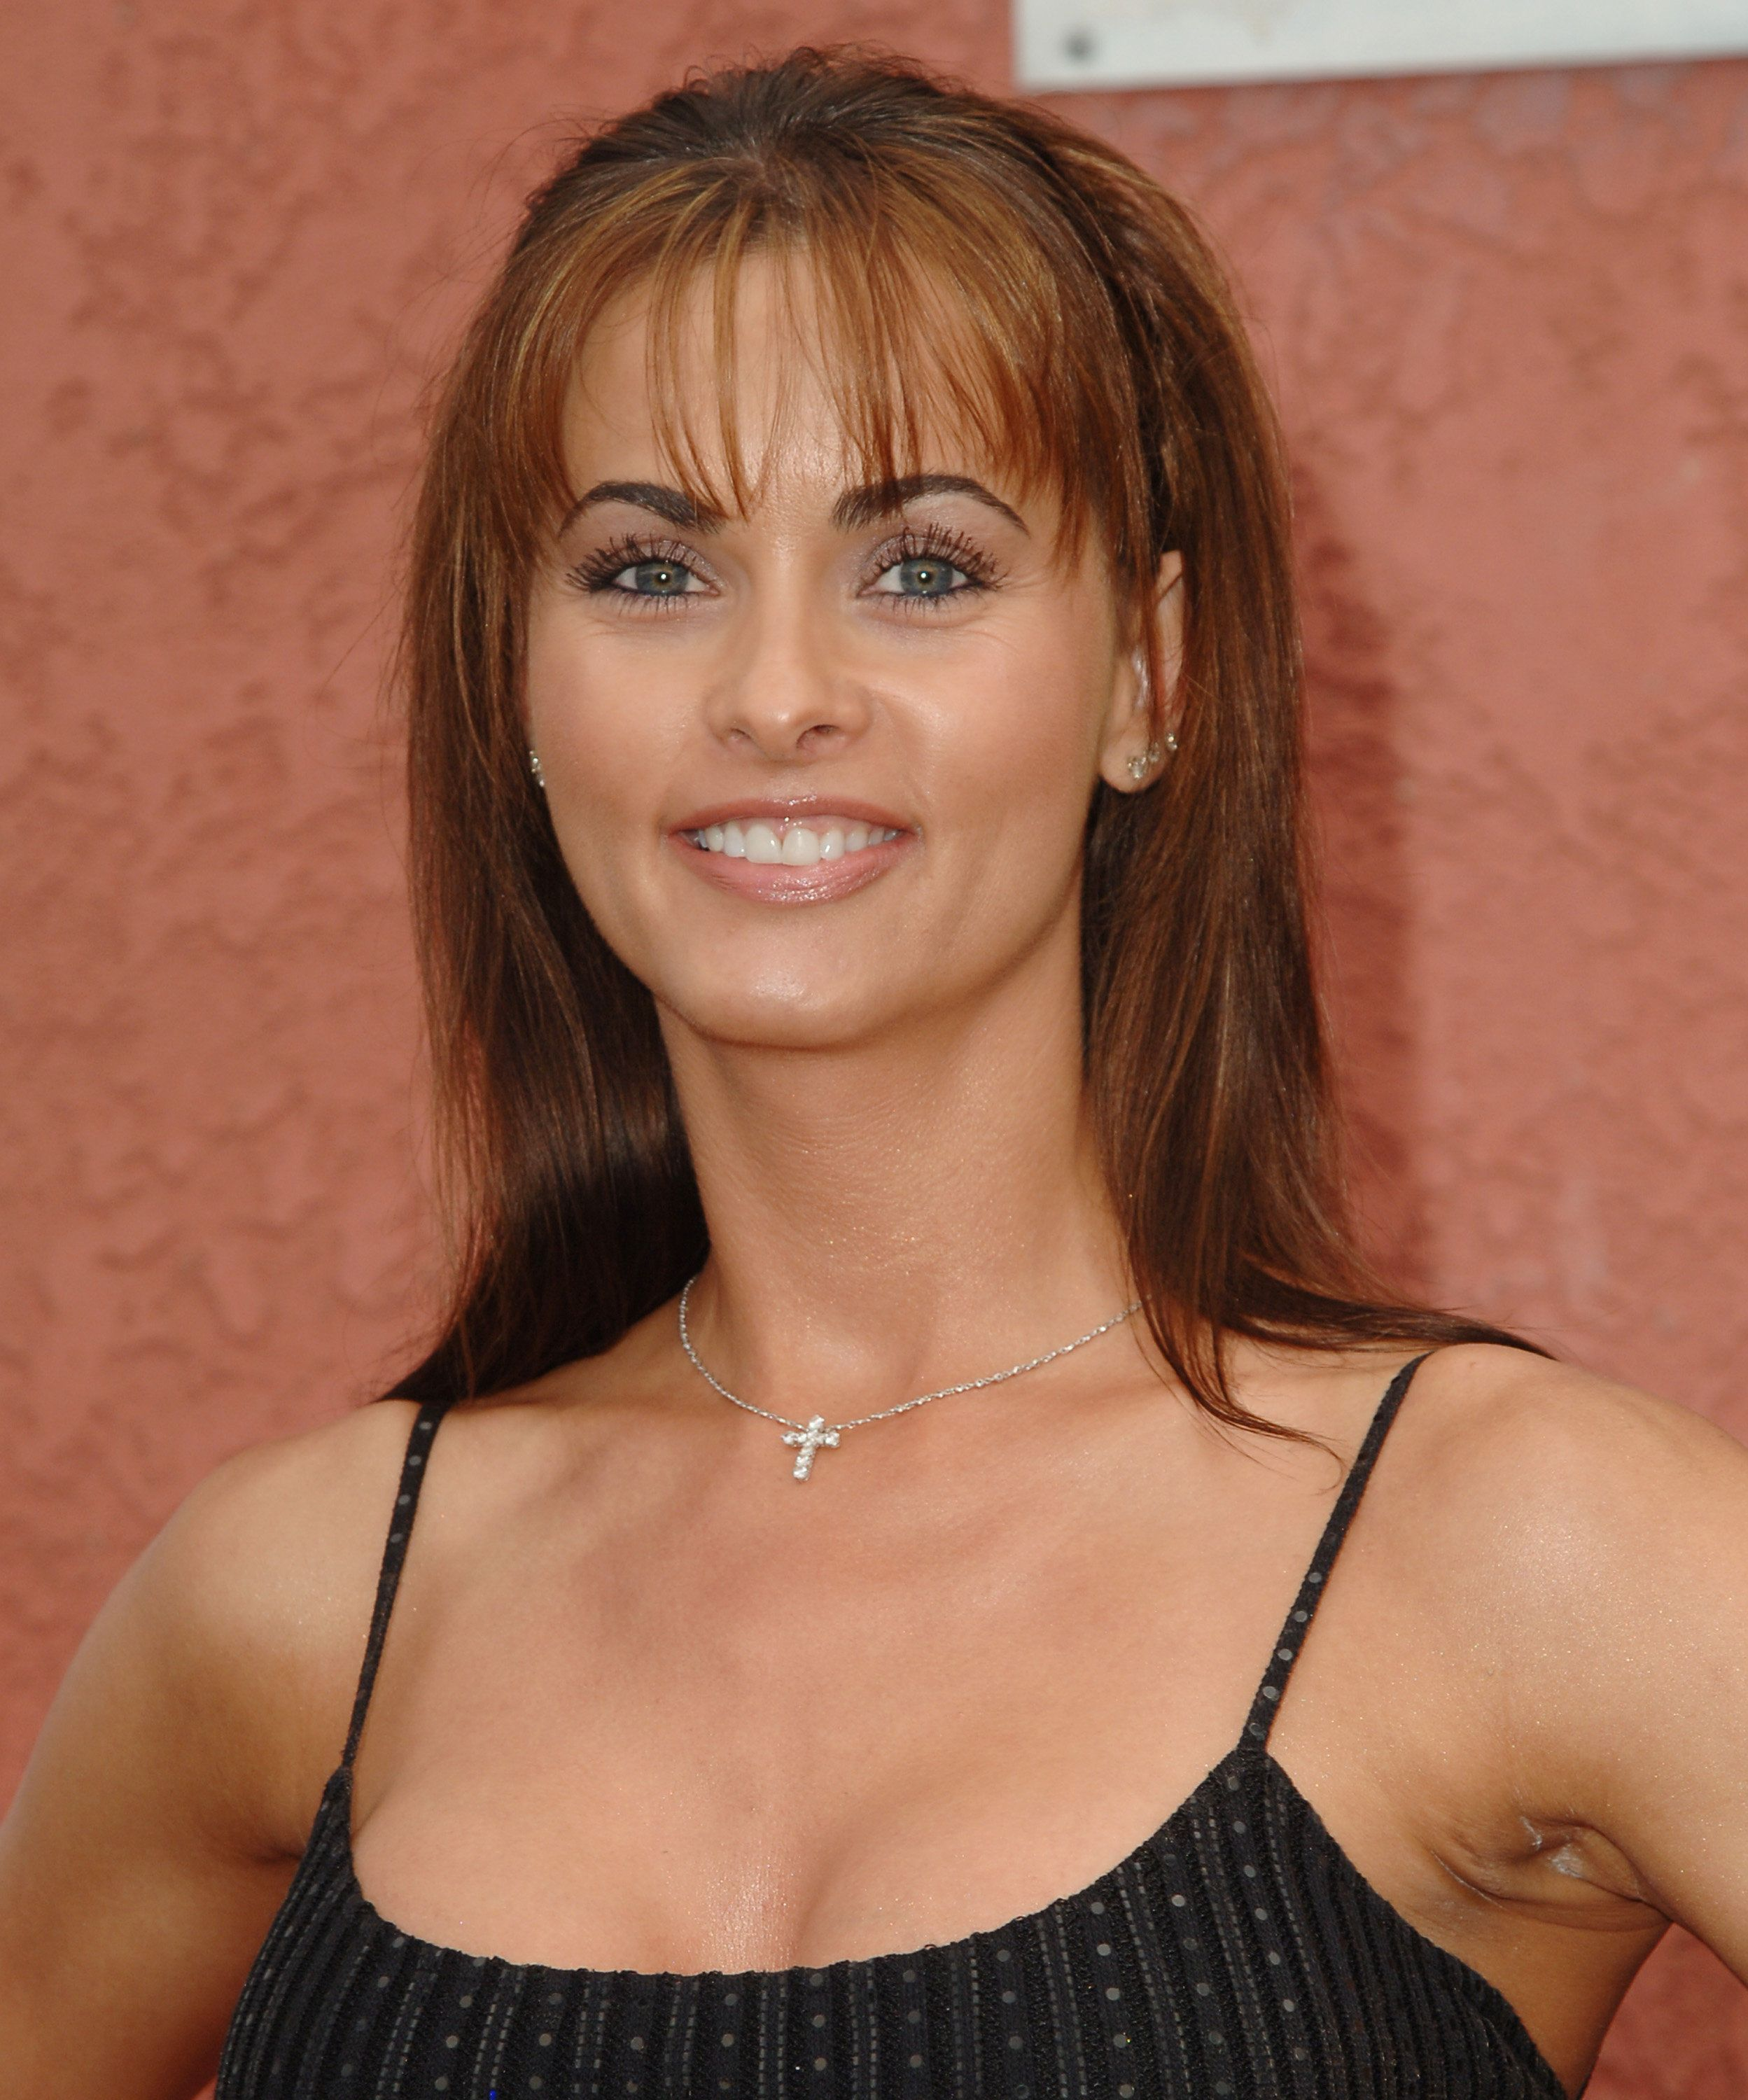 Karen McDougal during Movieline's Hollywood Life 7th Annual Young Hollywood Awards - Arrivals at Music Box at The Fonda in Hollywood, California, United States. (Photo by Jon Kopaloff/FilmMagic)